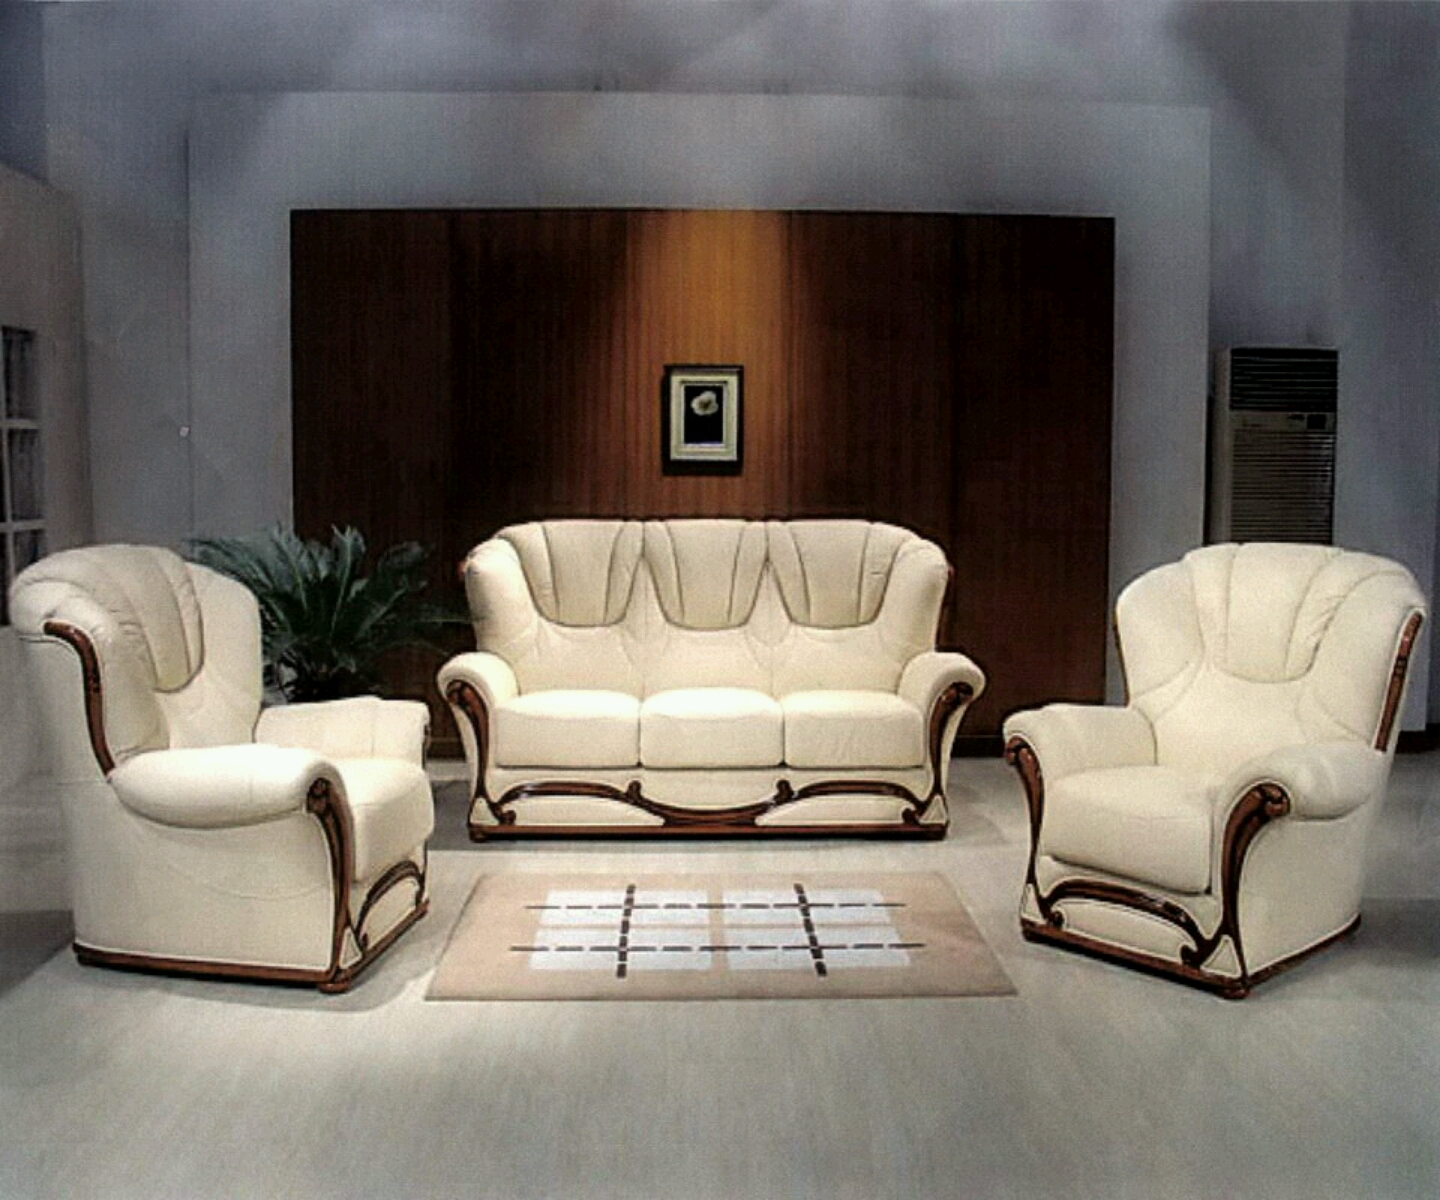 modern sofa set design ideas